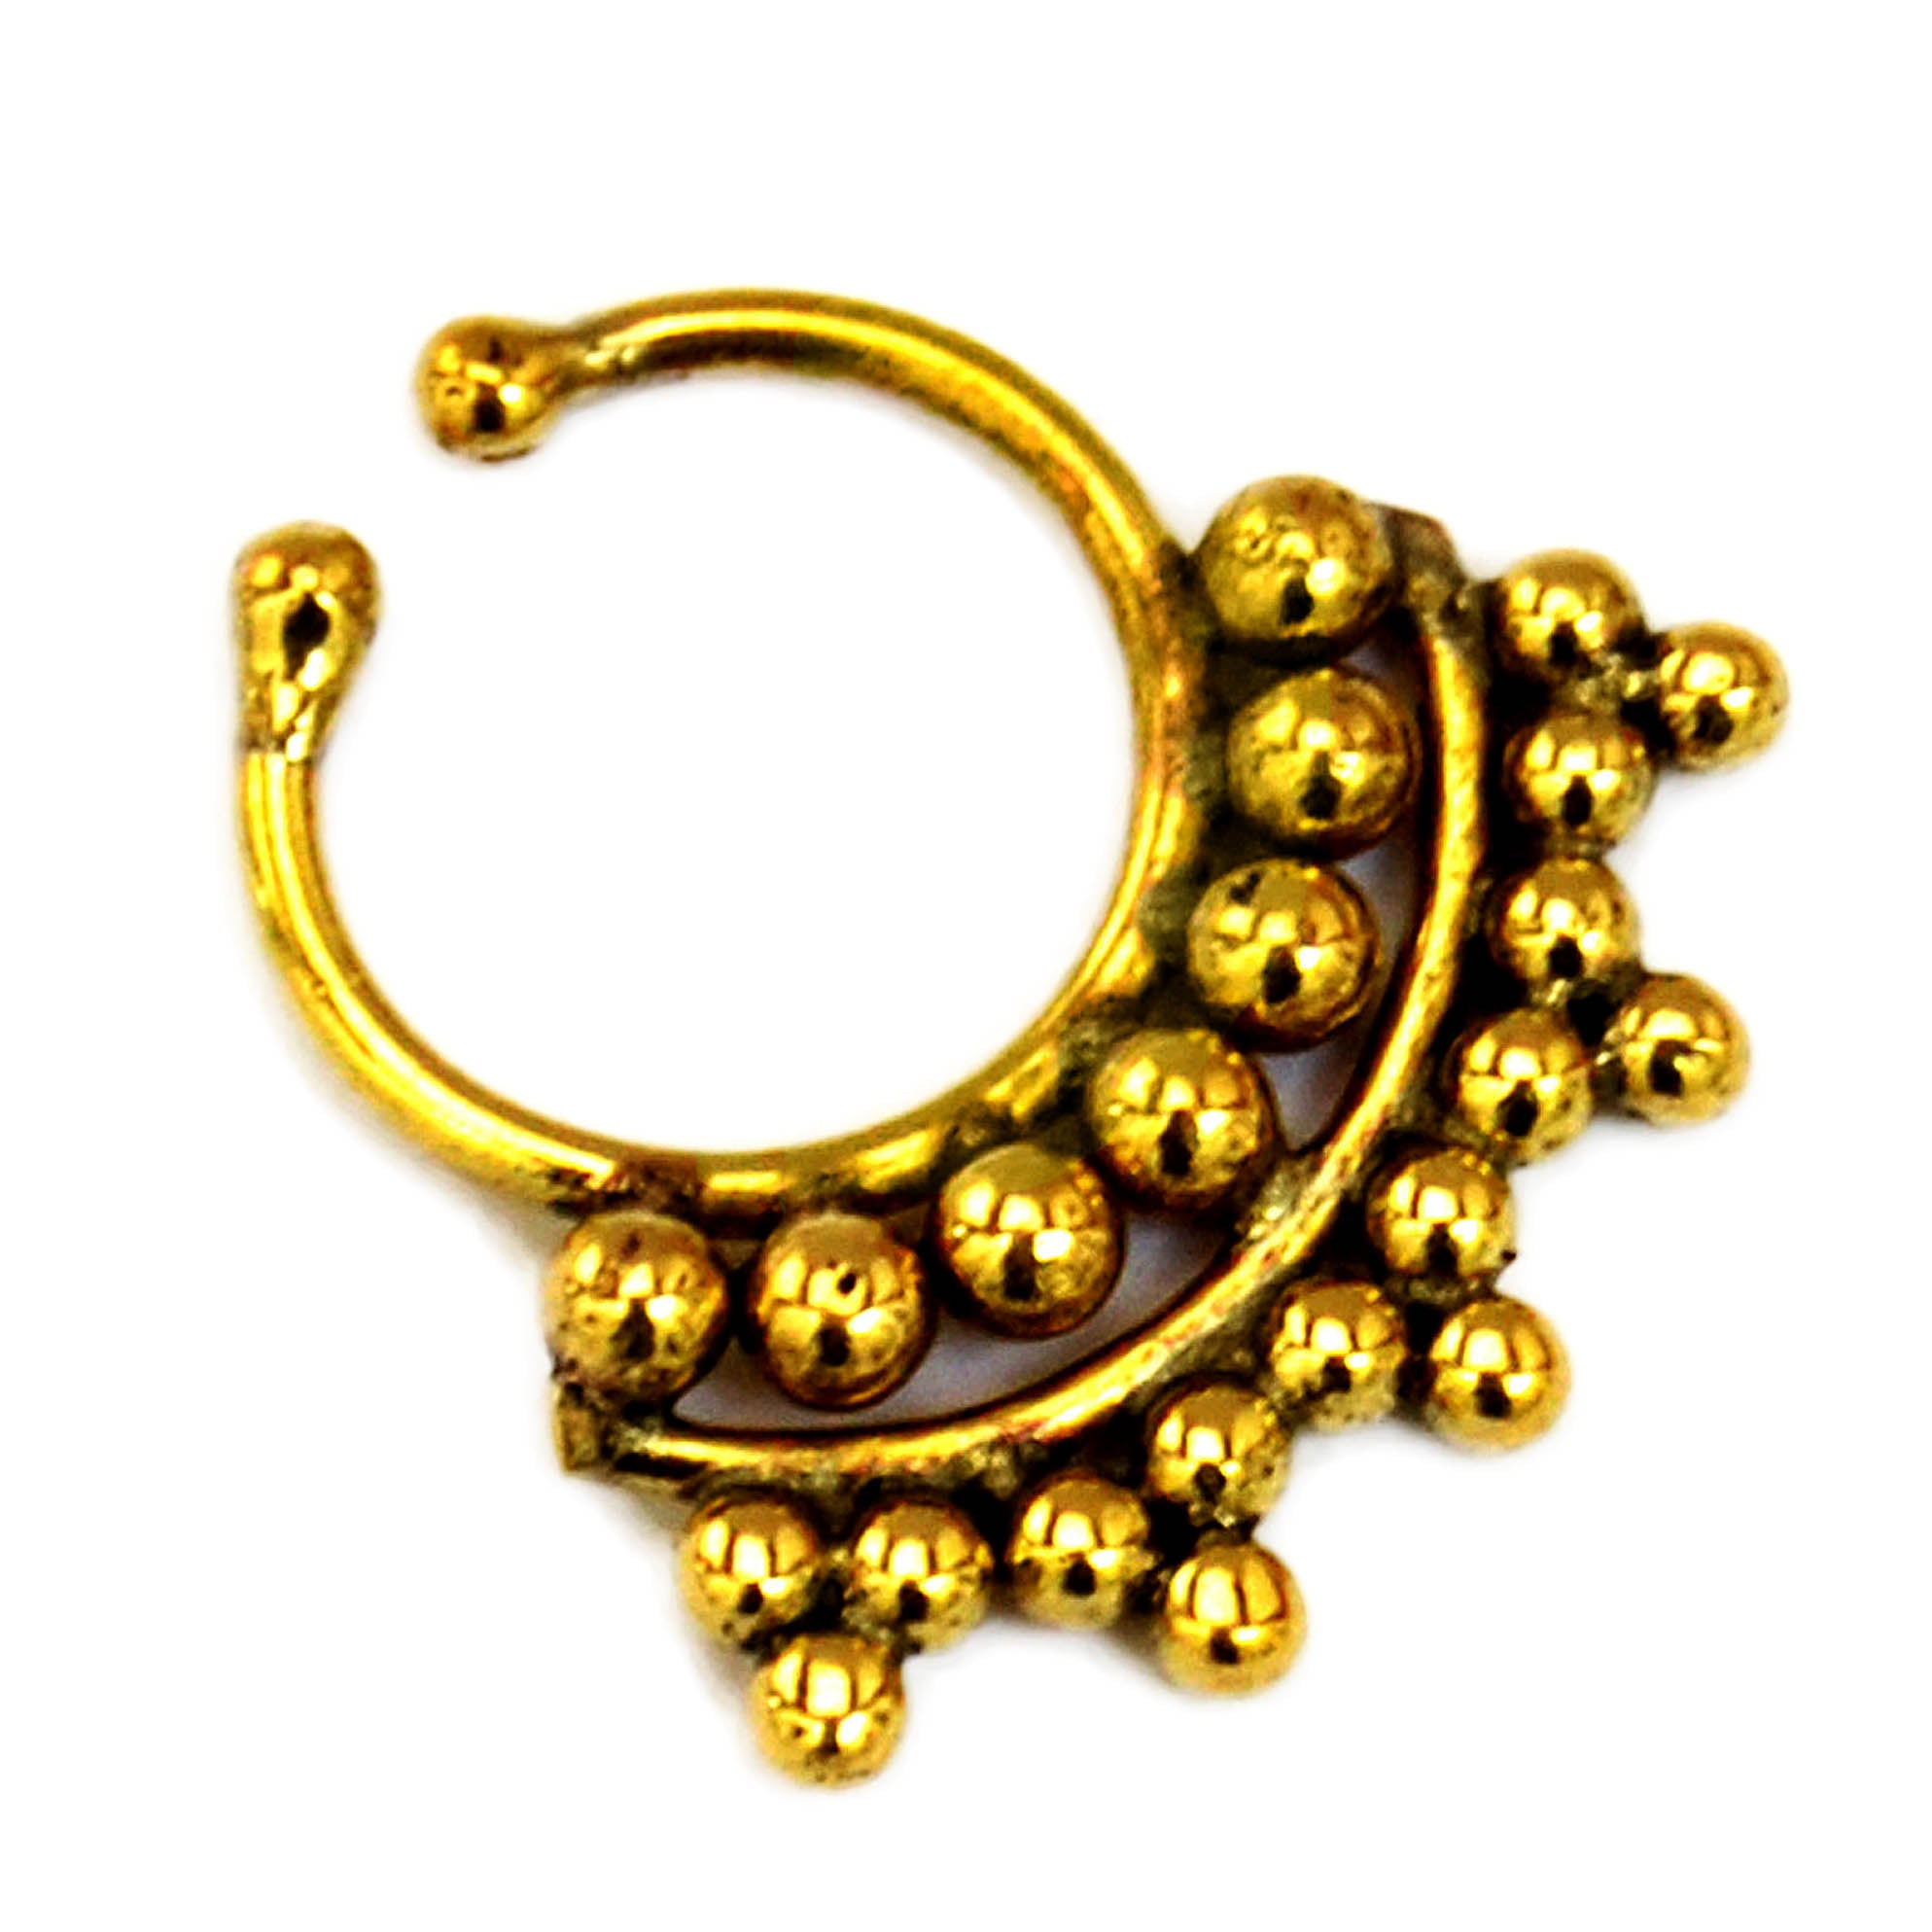 Gypsy gold septum